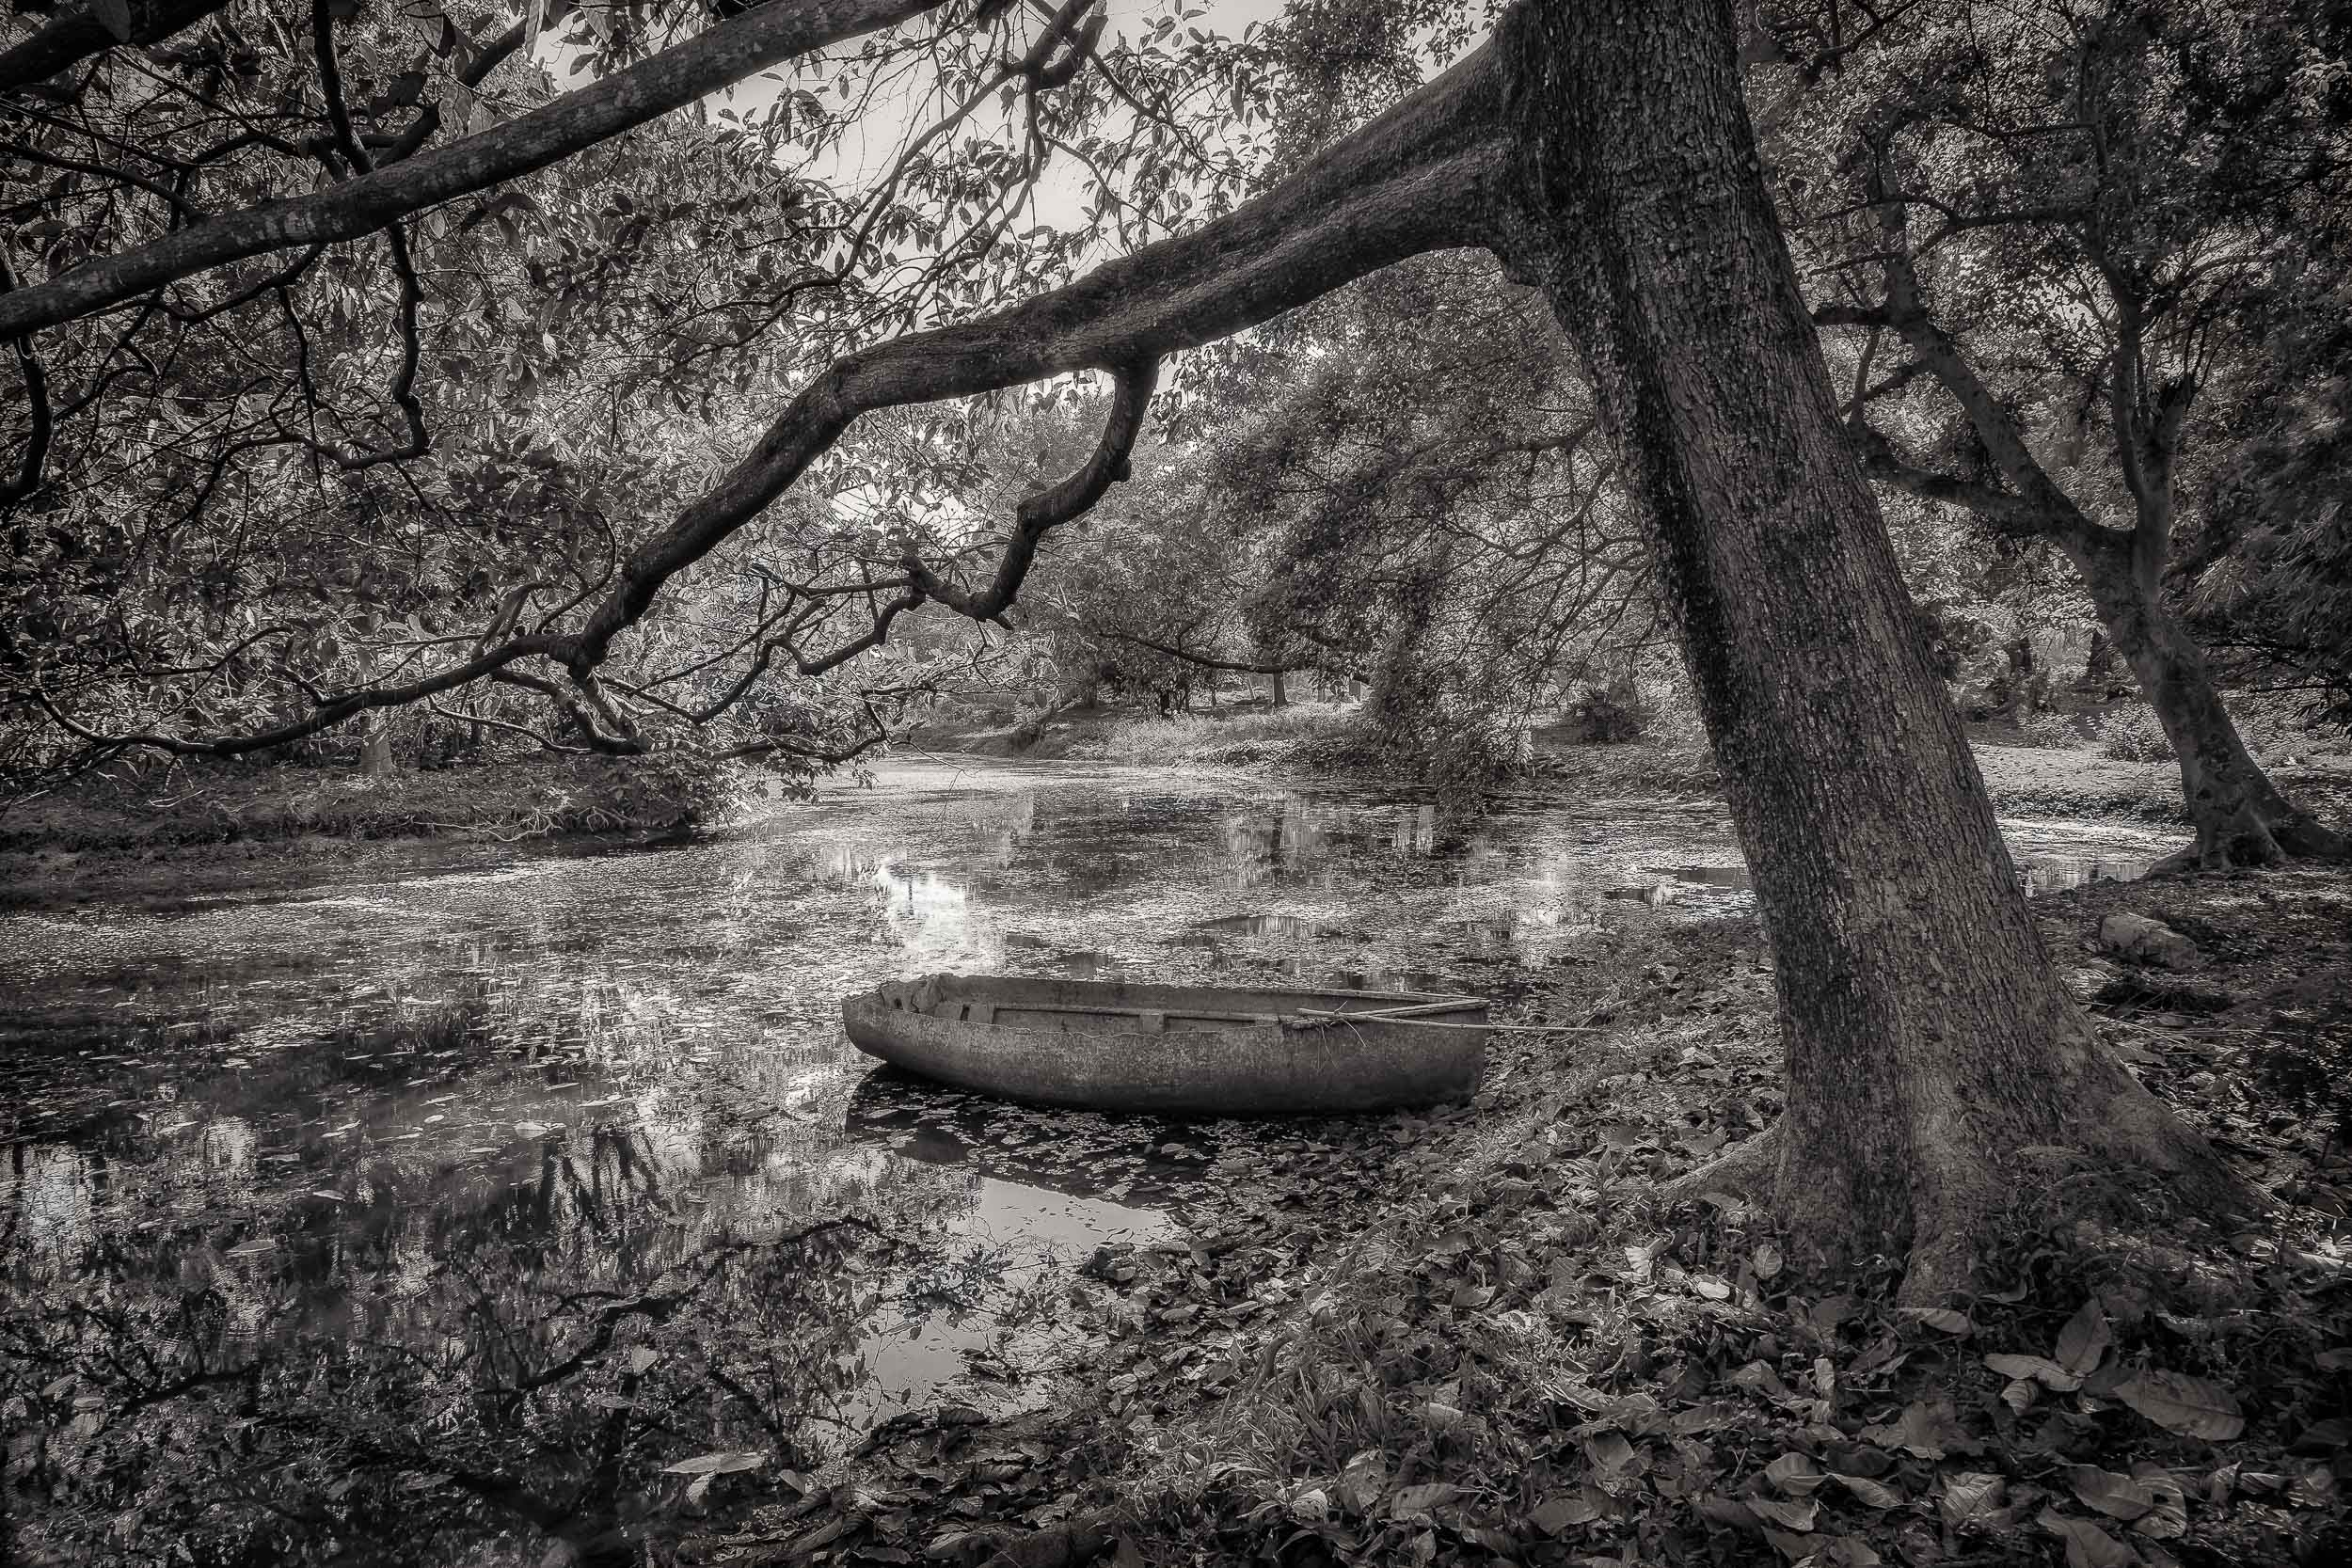 An    old boat    in the grounds of the    Botanical Gardens    in    Kolkata, India